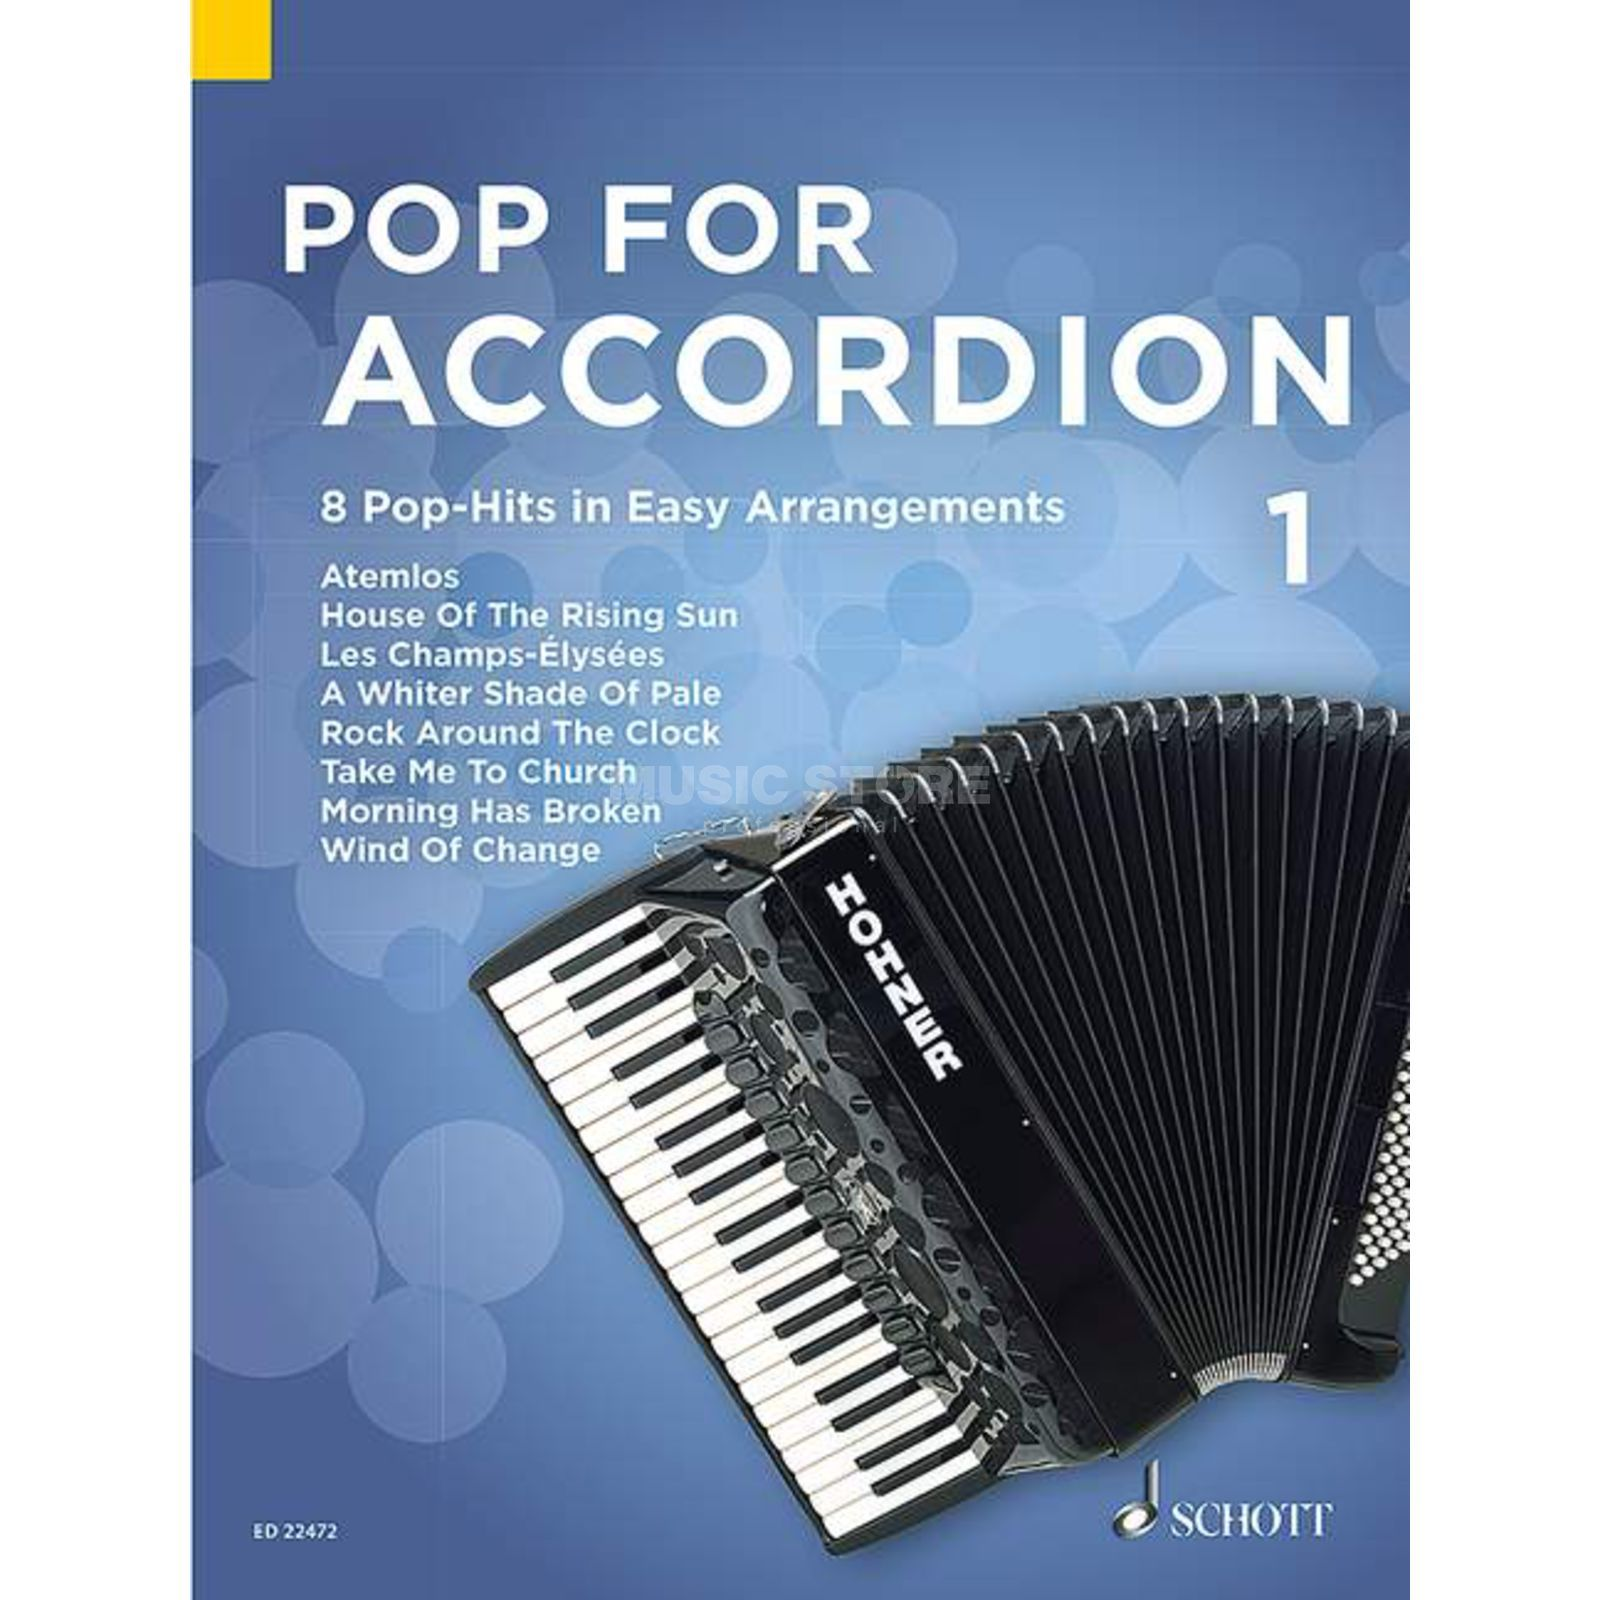 Schott Music Pop For Accordion 1 Product Image